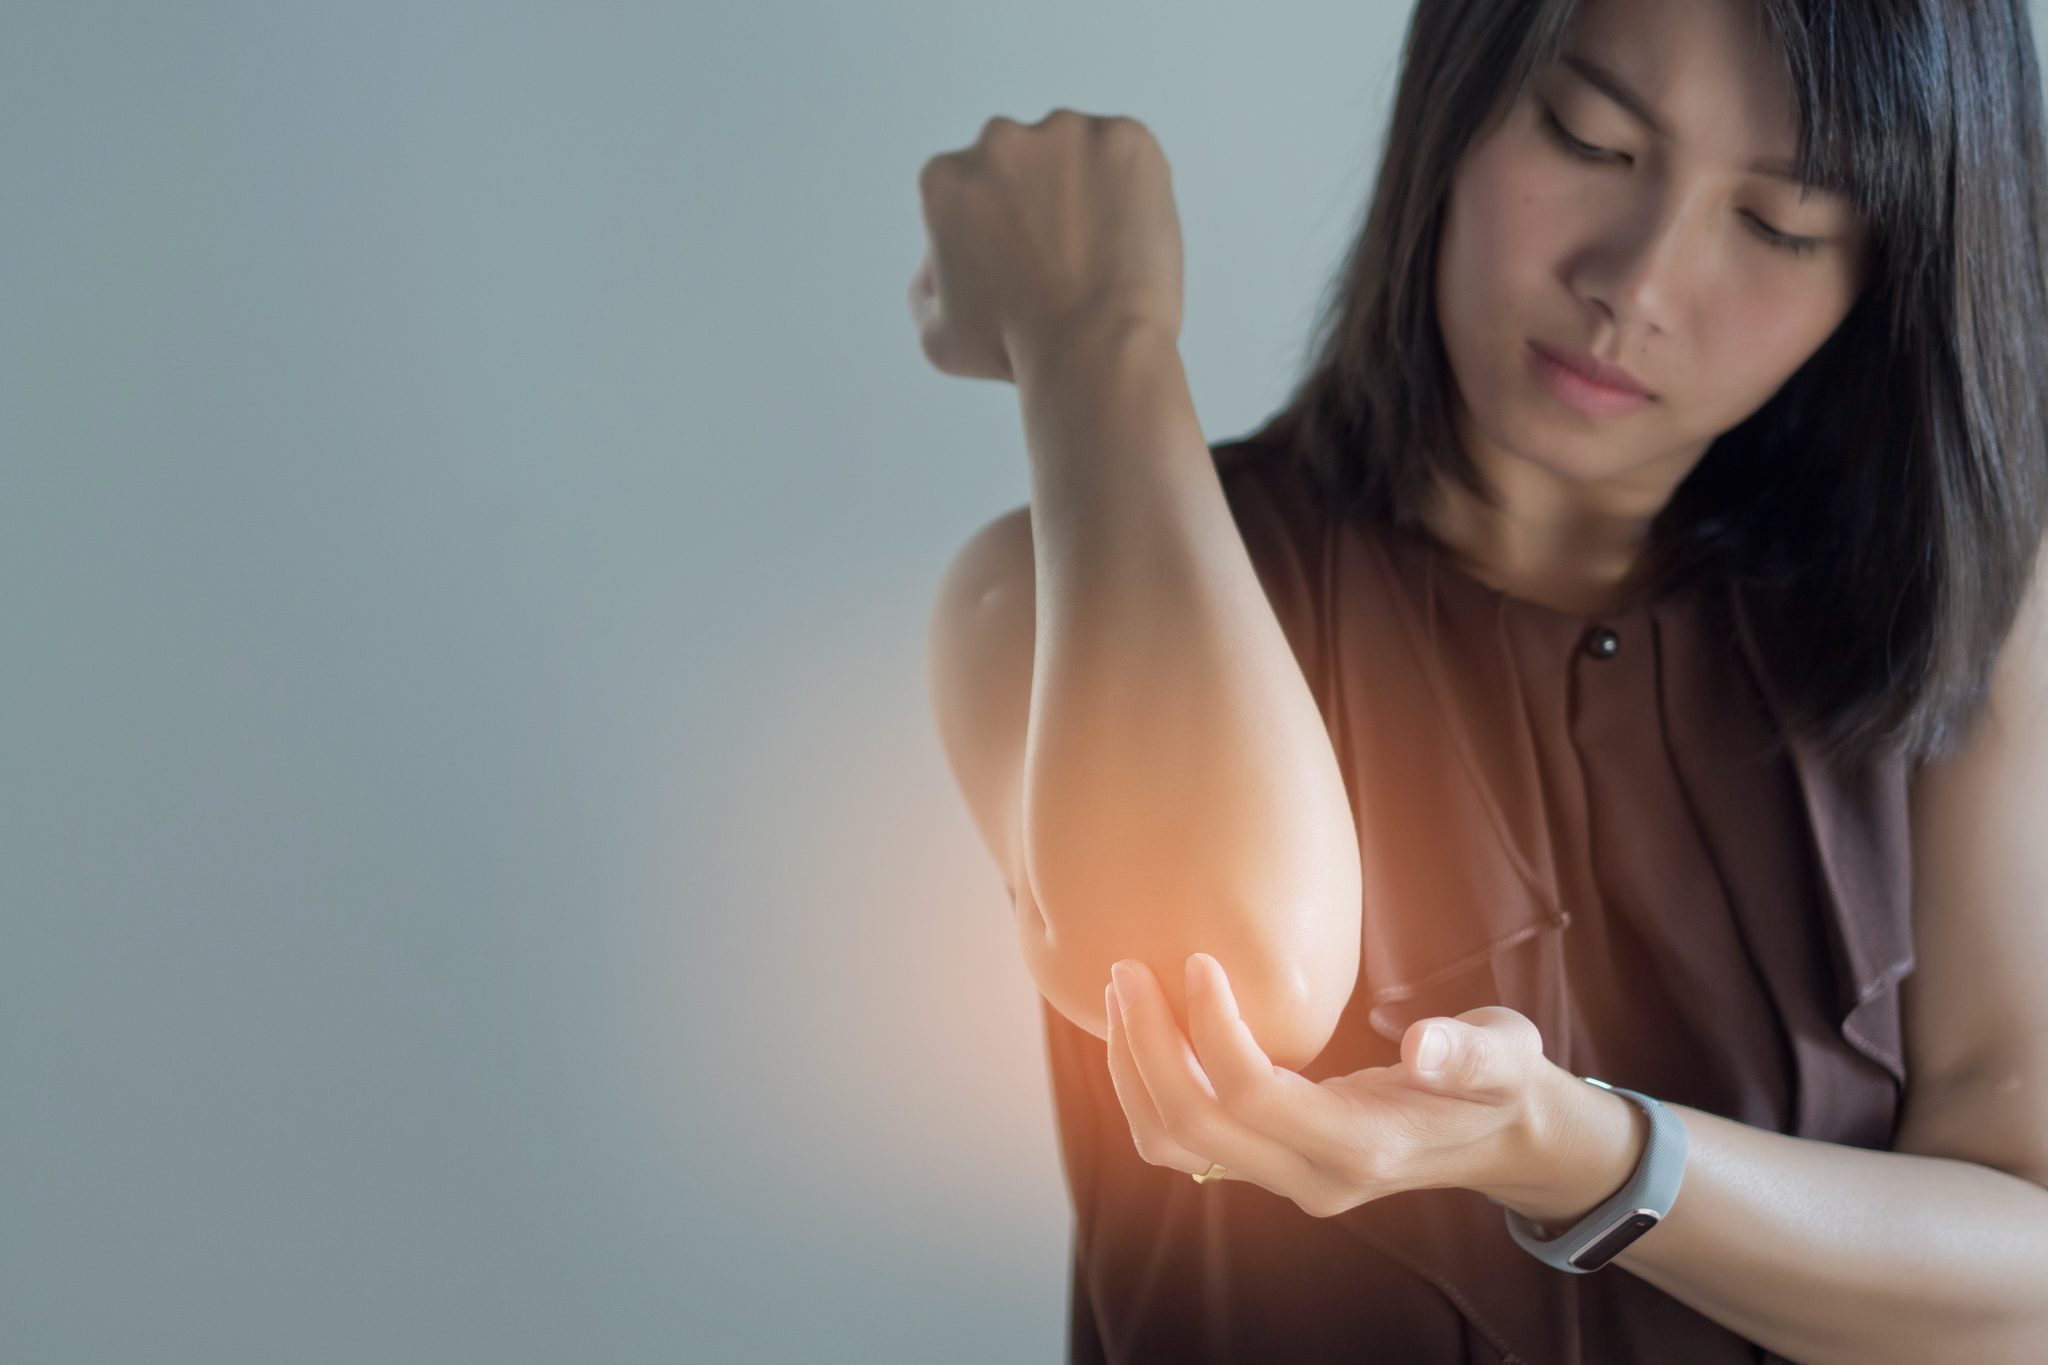 our specialized joint pain treatment